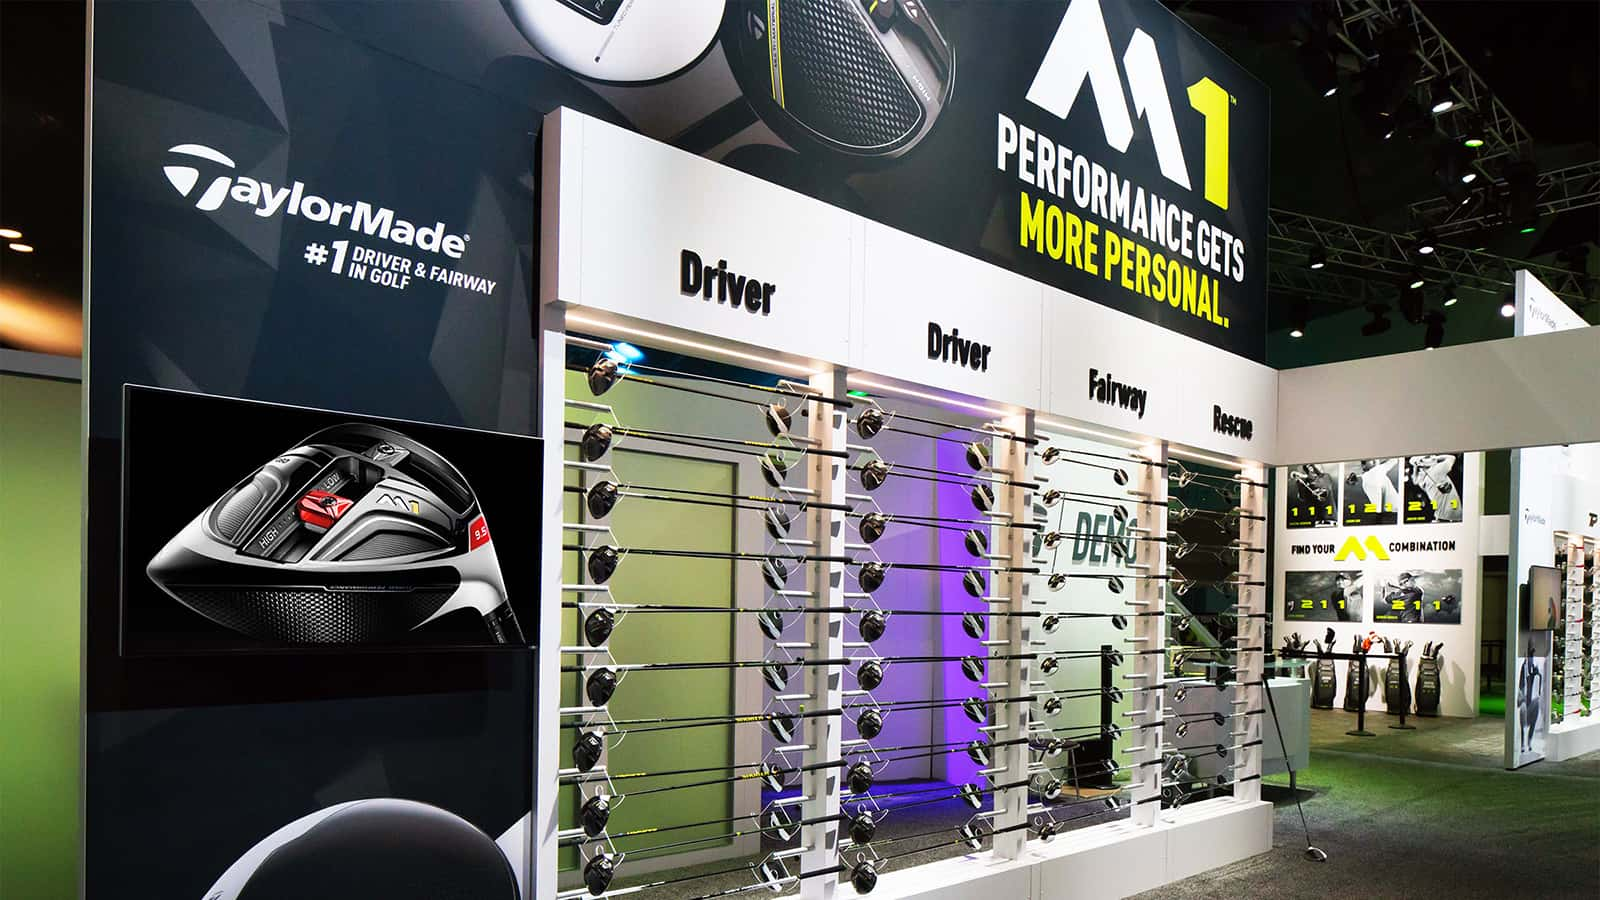 Golf club display at the TaylorMade PGA Merchandise Show 2017 experience.